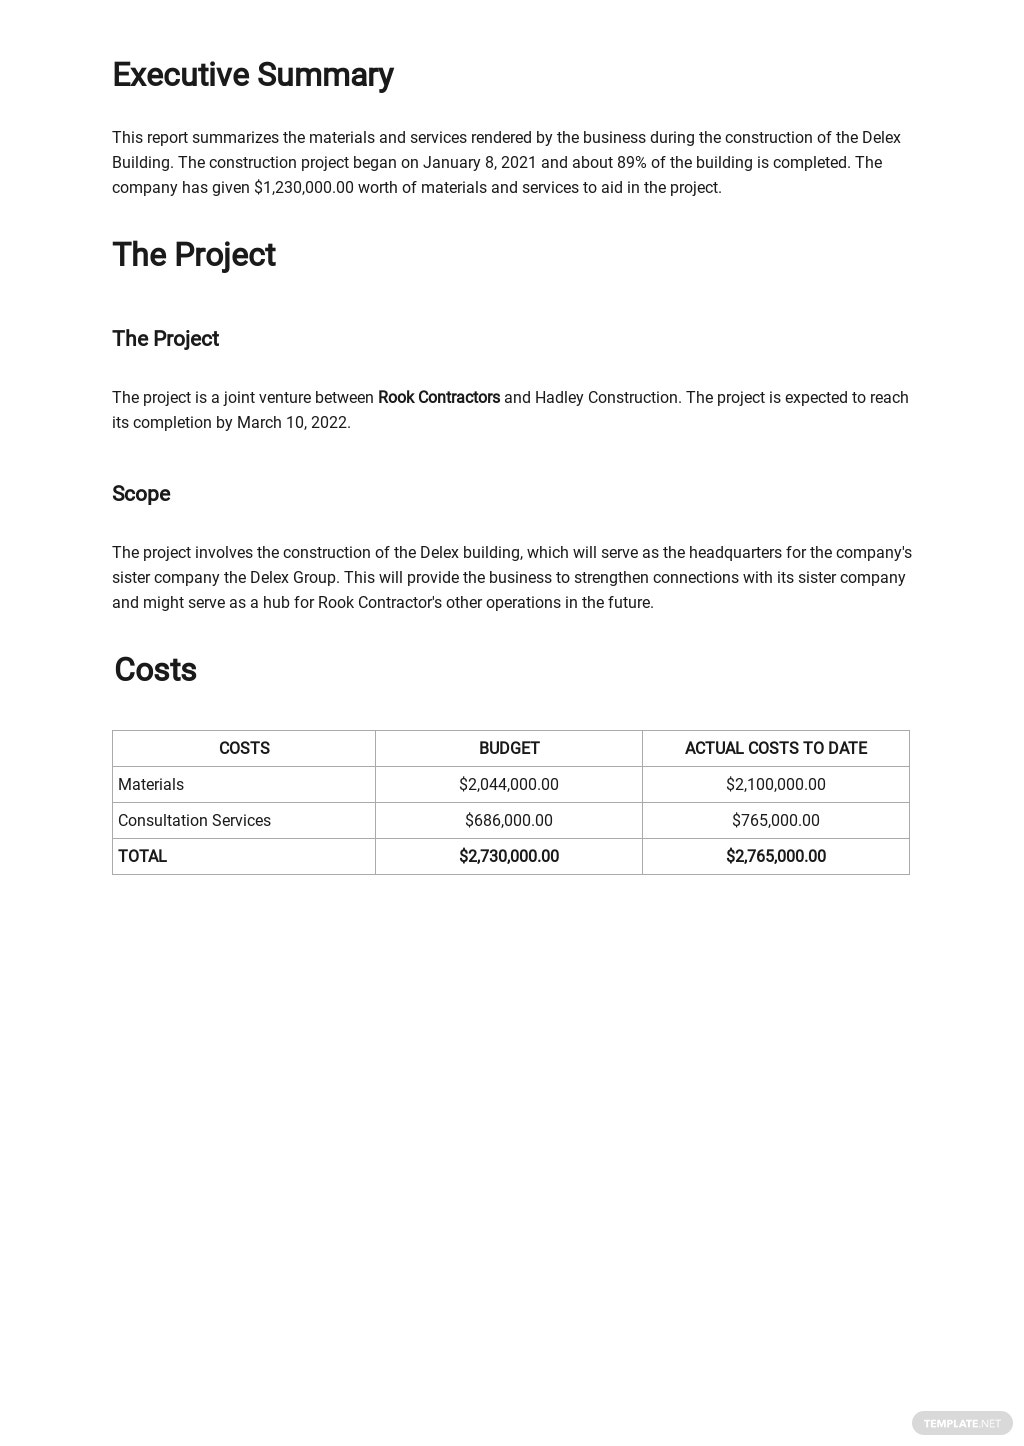 Free Contractor Expense Report Template 1.jpe